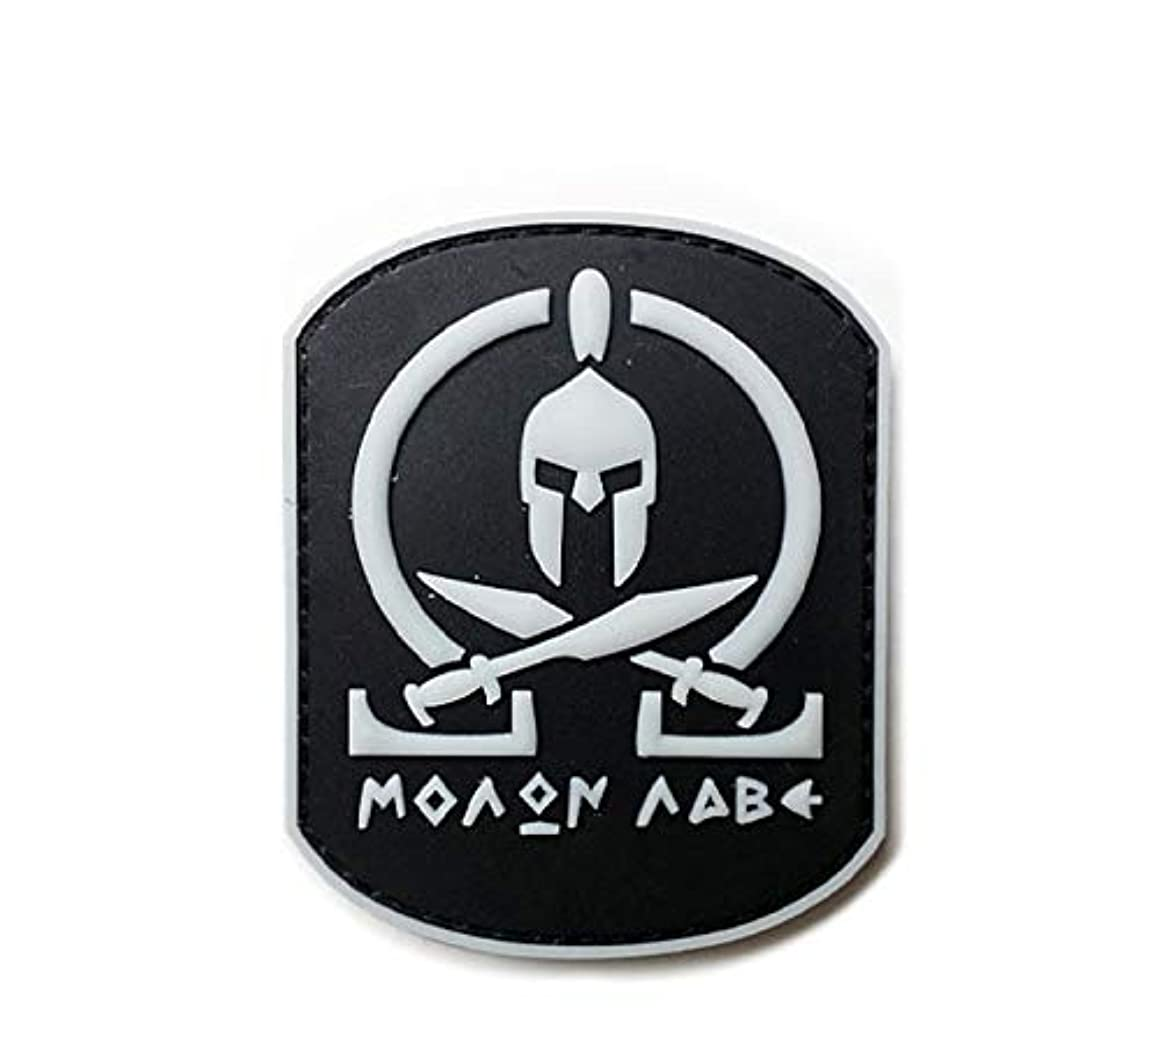 Morton Home Molon Labe Fastener Patch | Airsoft Paintball Tactical Military Rubber Badges PVC Rubber 3D Morale (White)